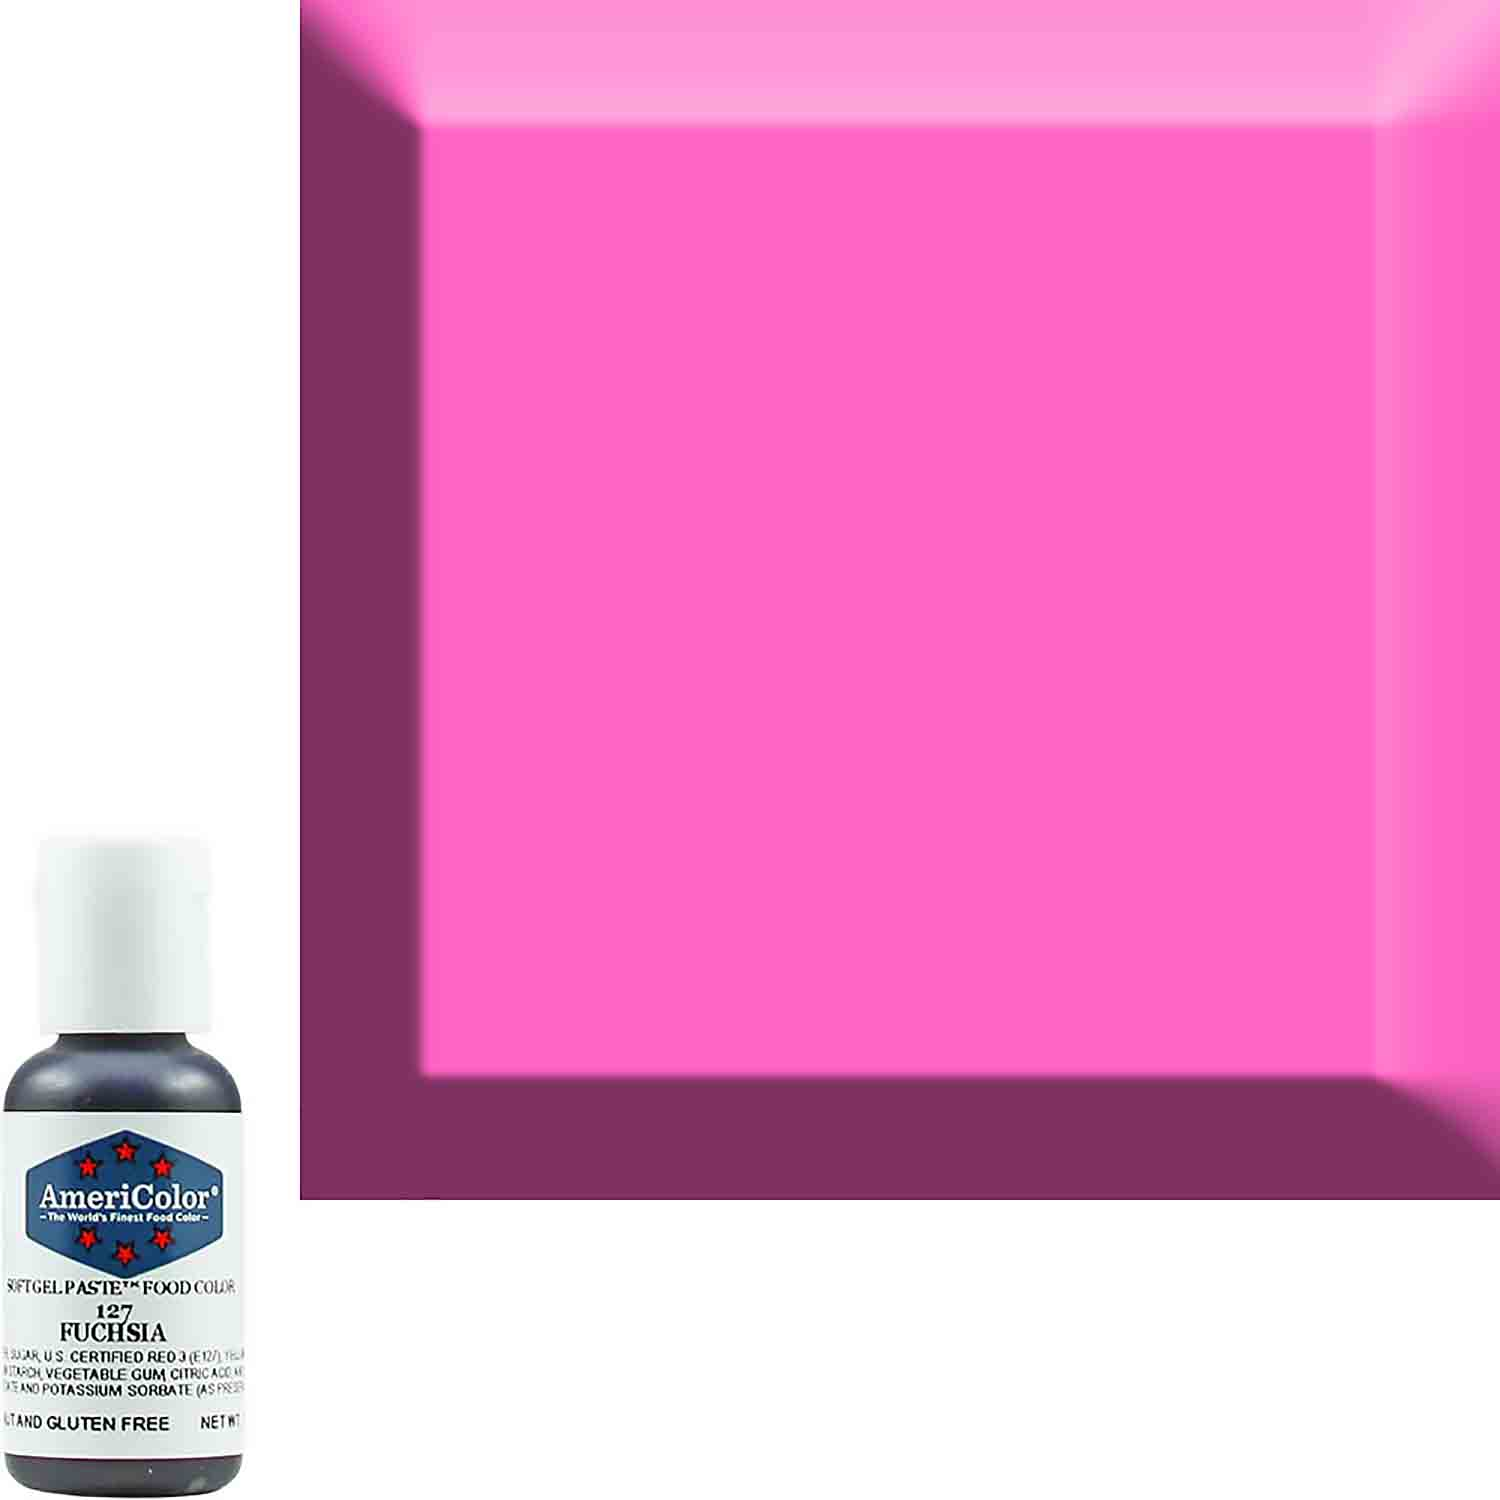 Fuchsia Americolor® Soft Gel Paste Food Color (Old # 41-8027)